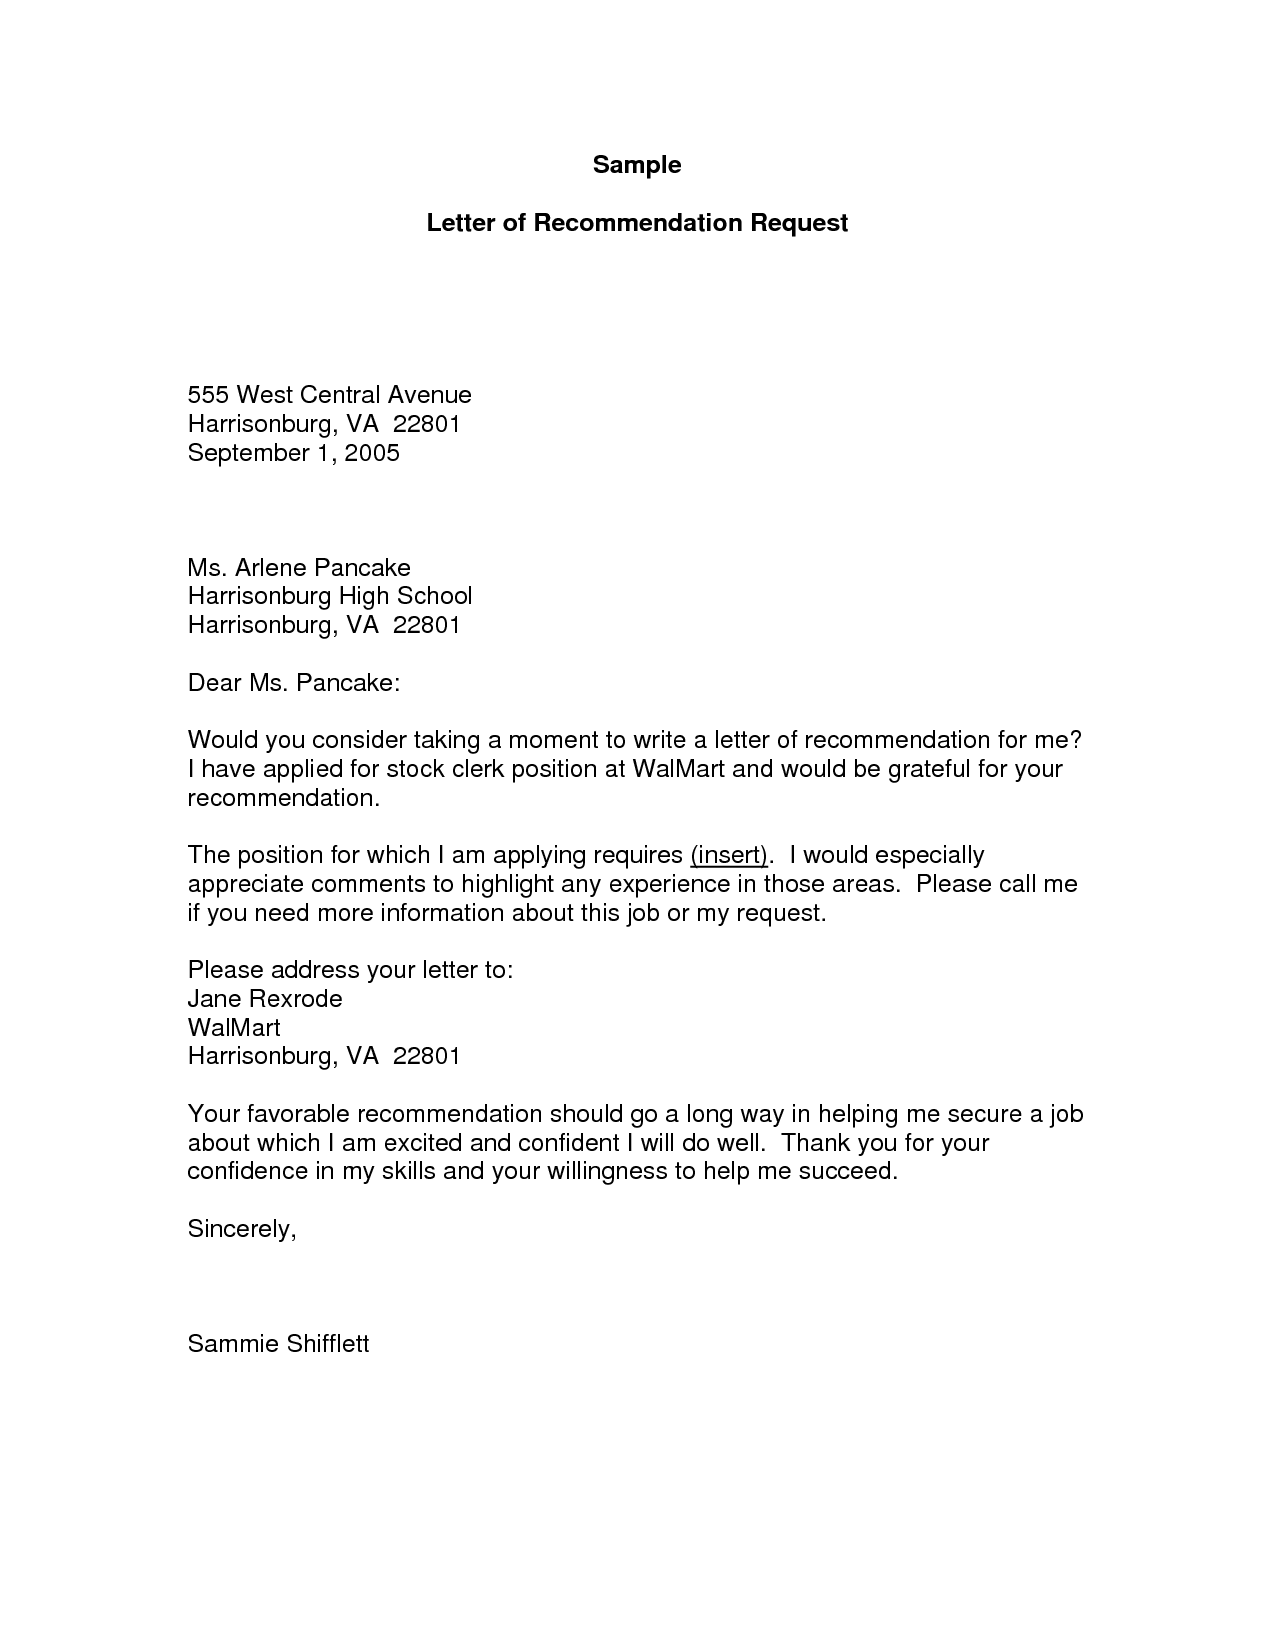 how to write a letter asking for a letter of recommendation Kleo